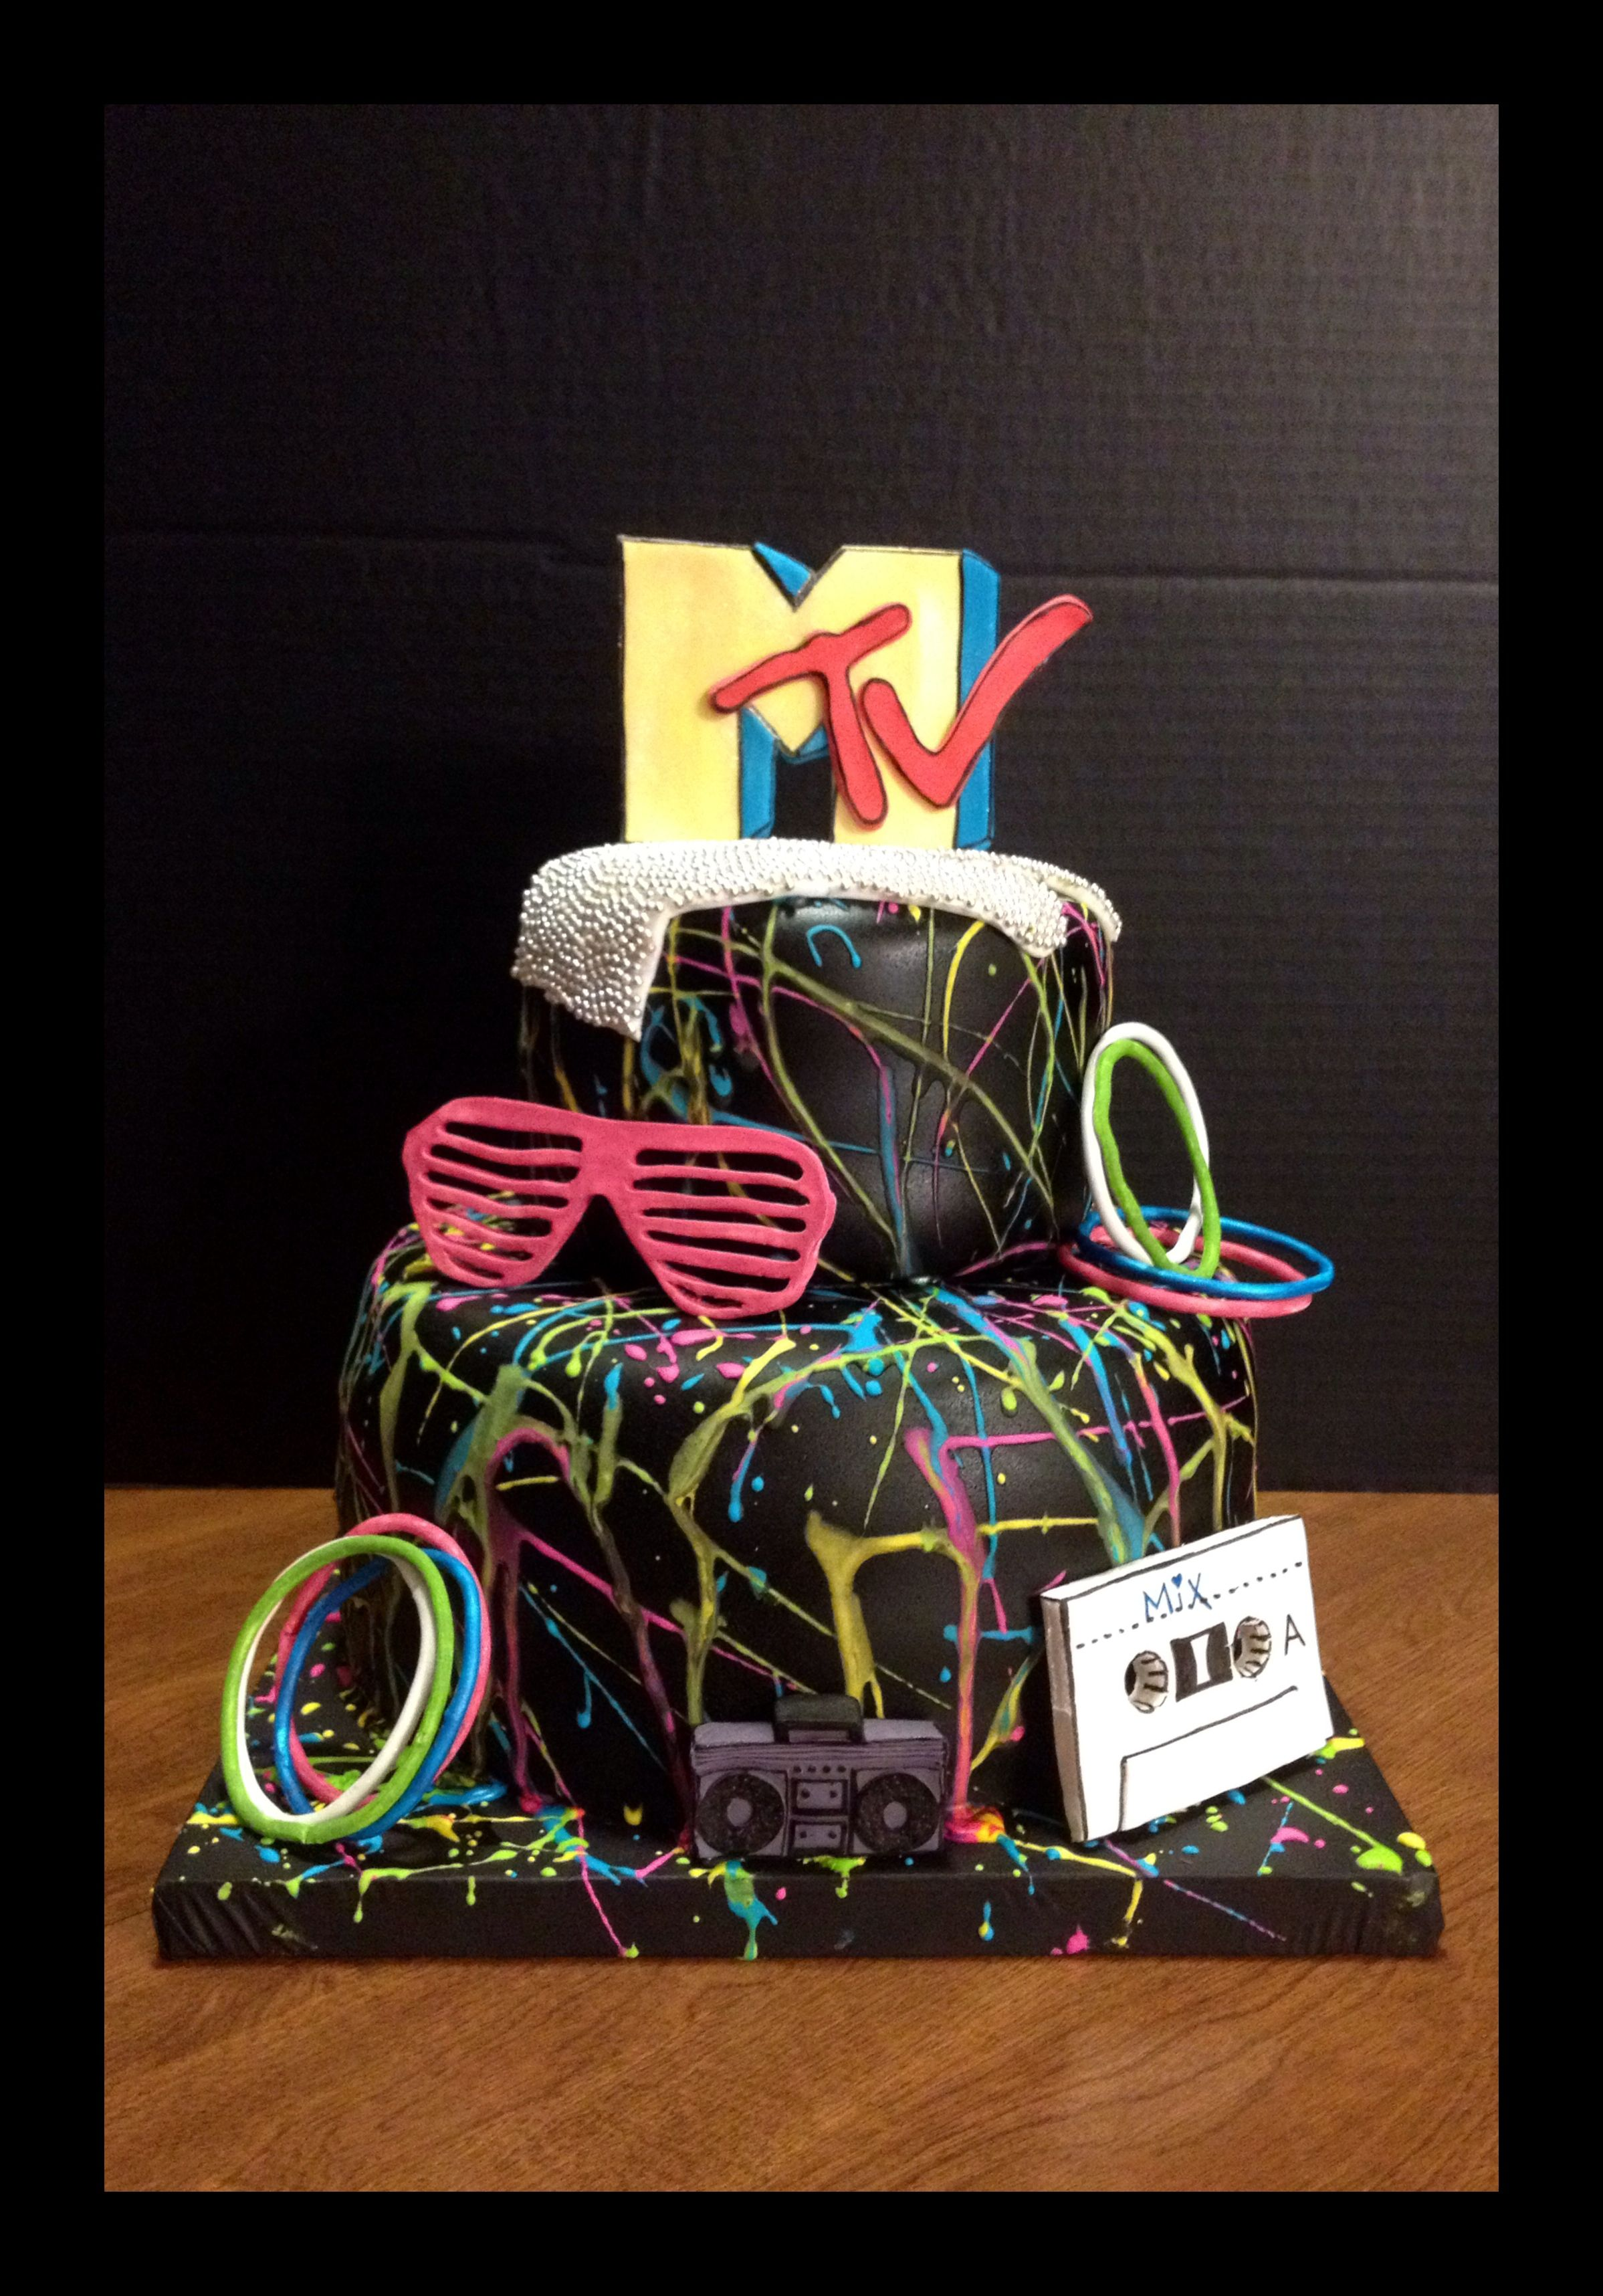 Stupendous 80S Cake By Pattibcakes Spicewood Tx With Images 80S Birthday Birthday Cards Printable Riciscafe Filternl